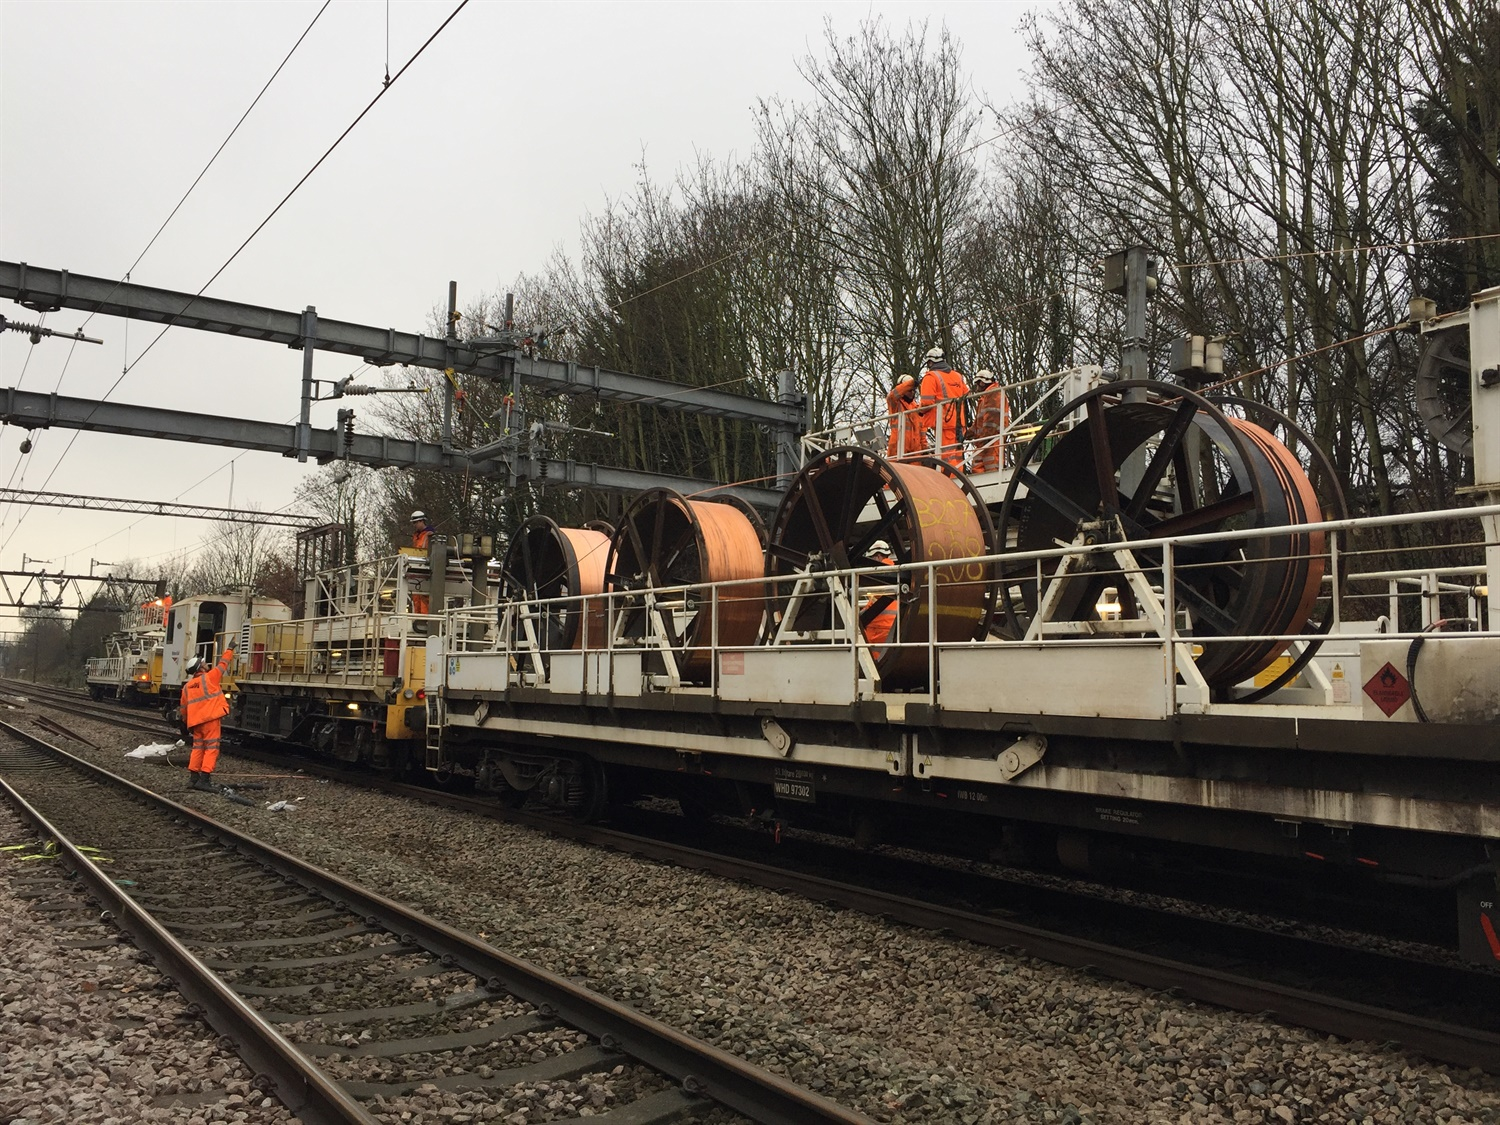 Norwich to London closures over Christmas as engineers replace 1950s wiring